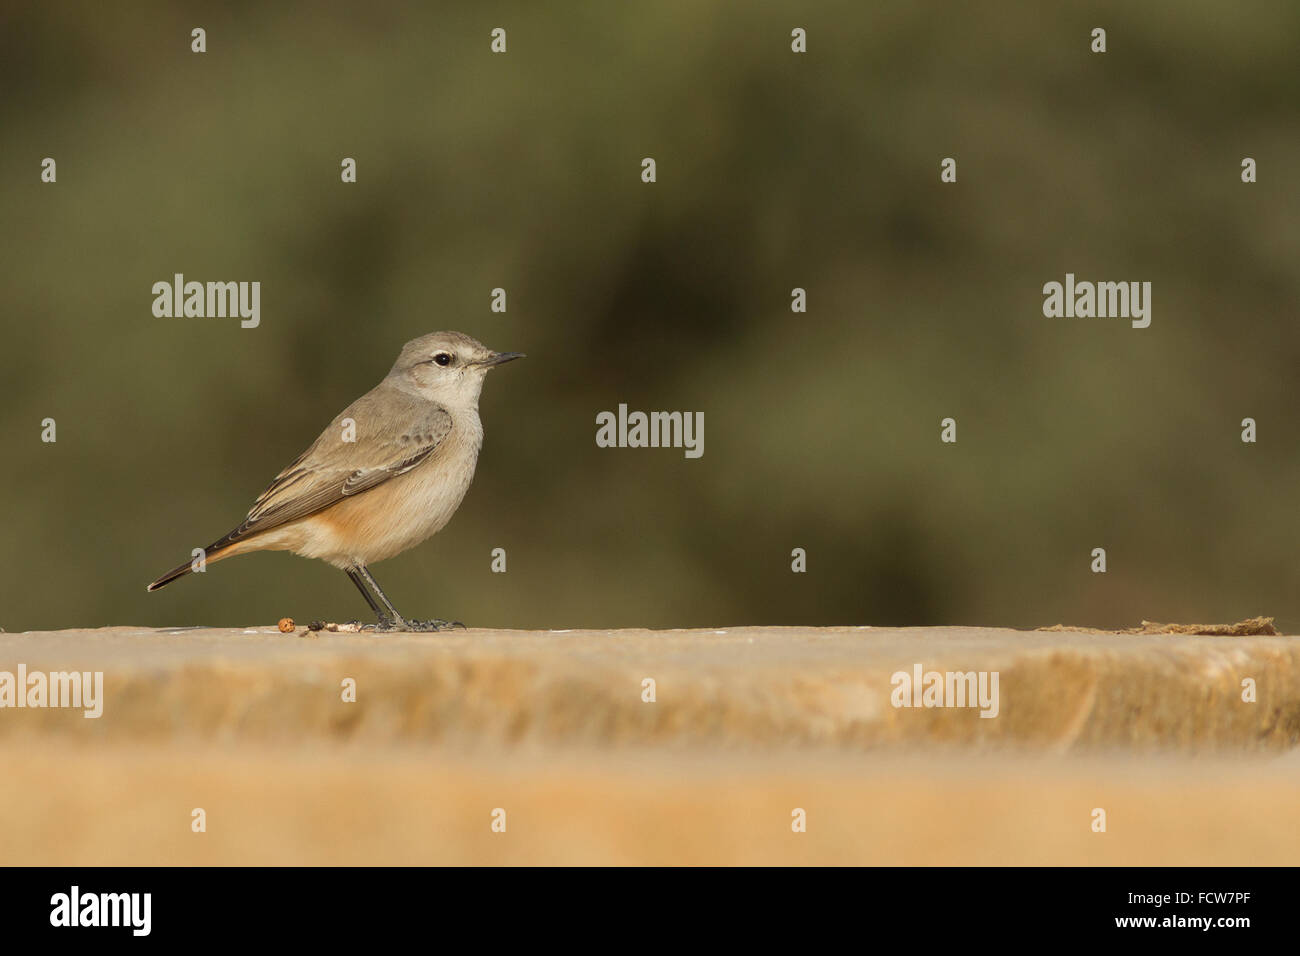 red-tailed wheatear (Oenanthe chrysopygia) at Rajasthan, India - Stock Image